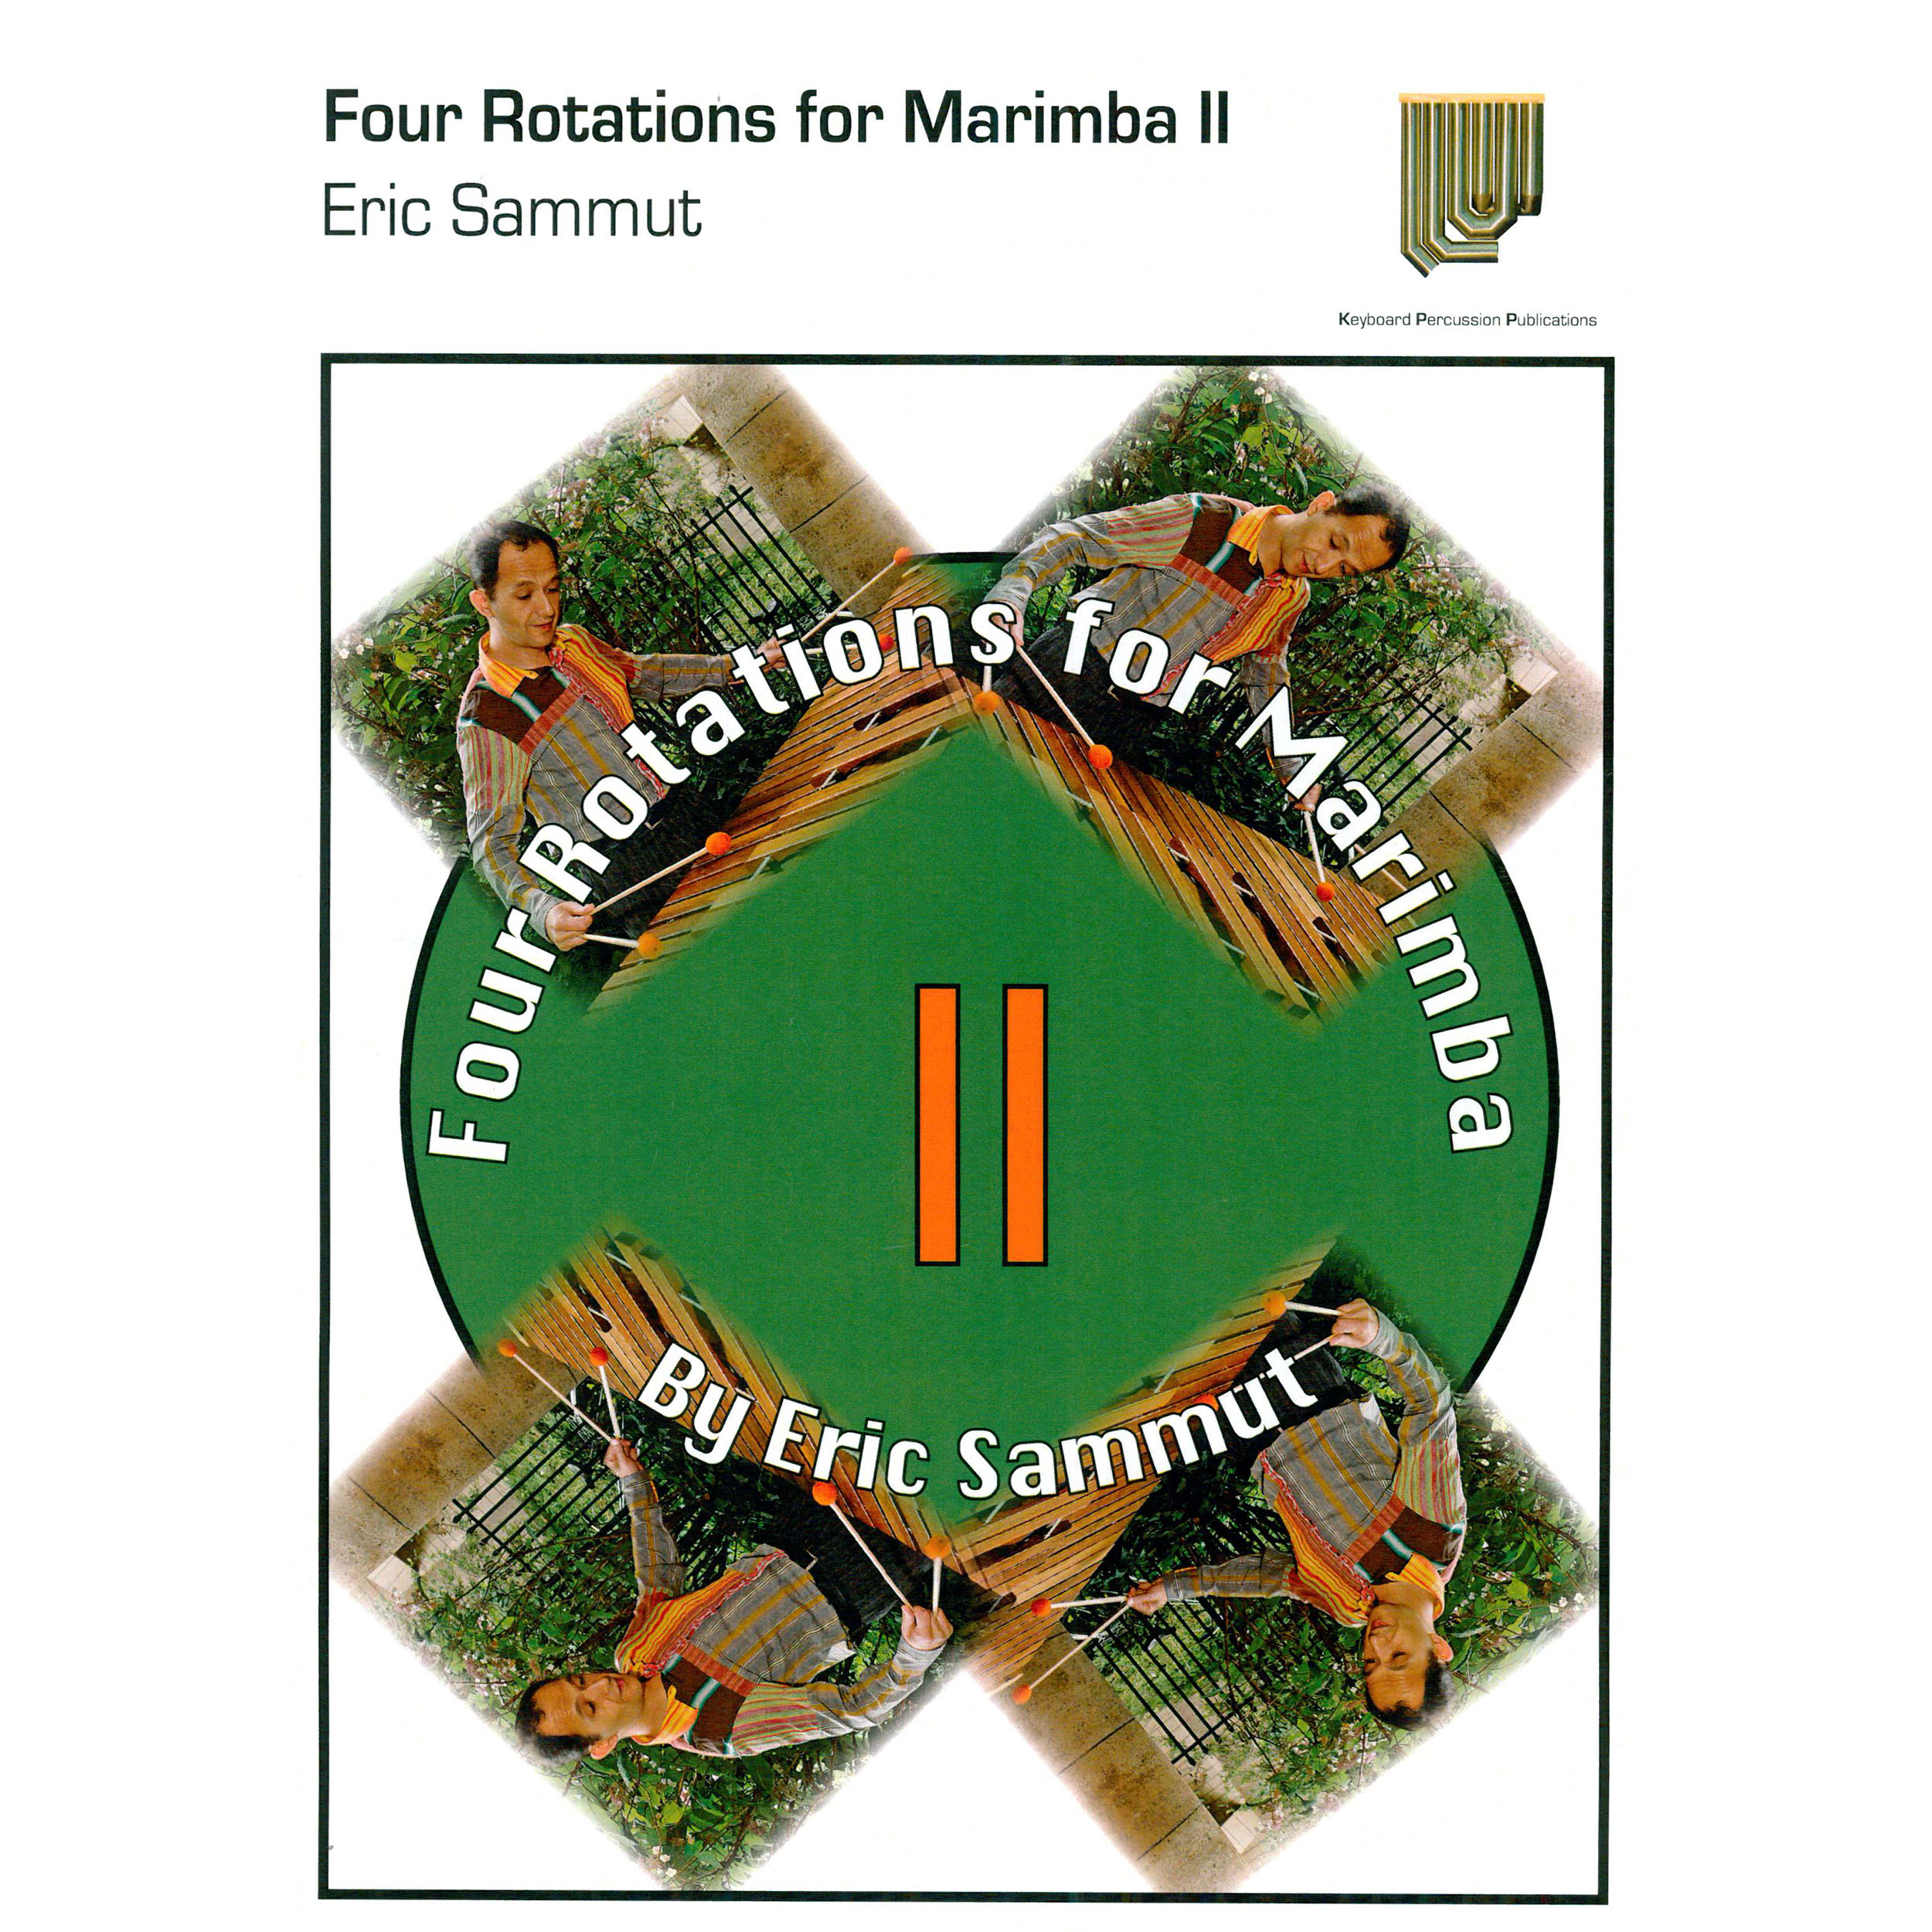 Four Rotations for Marimba II